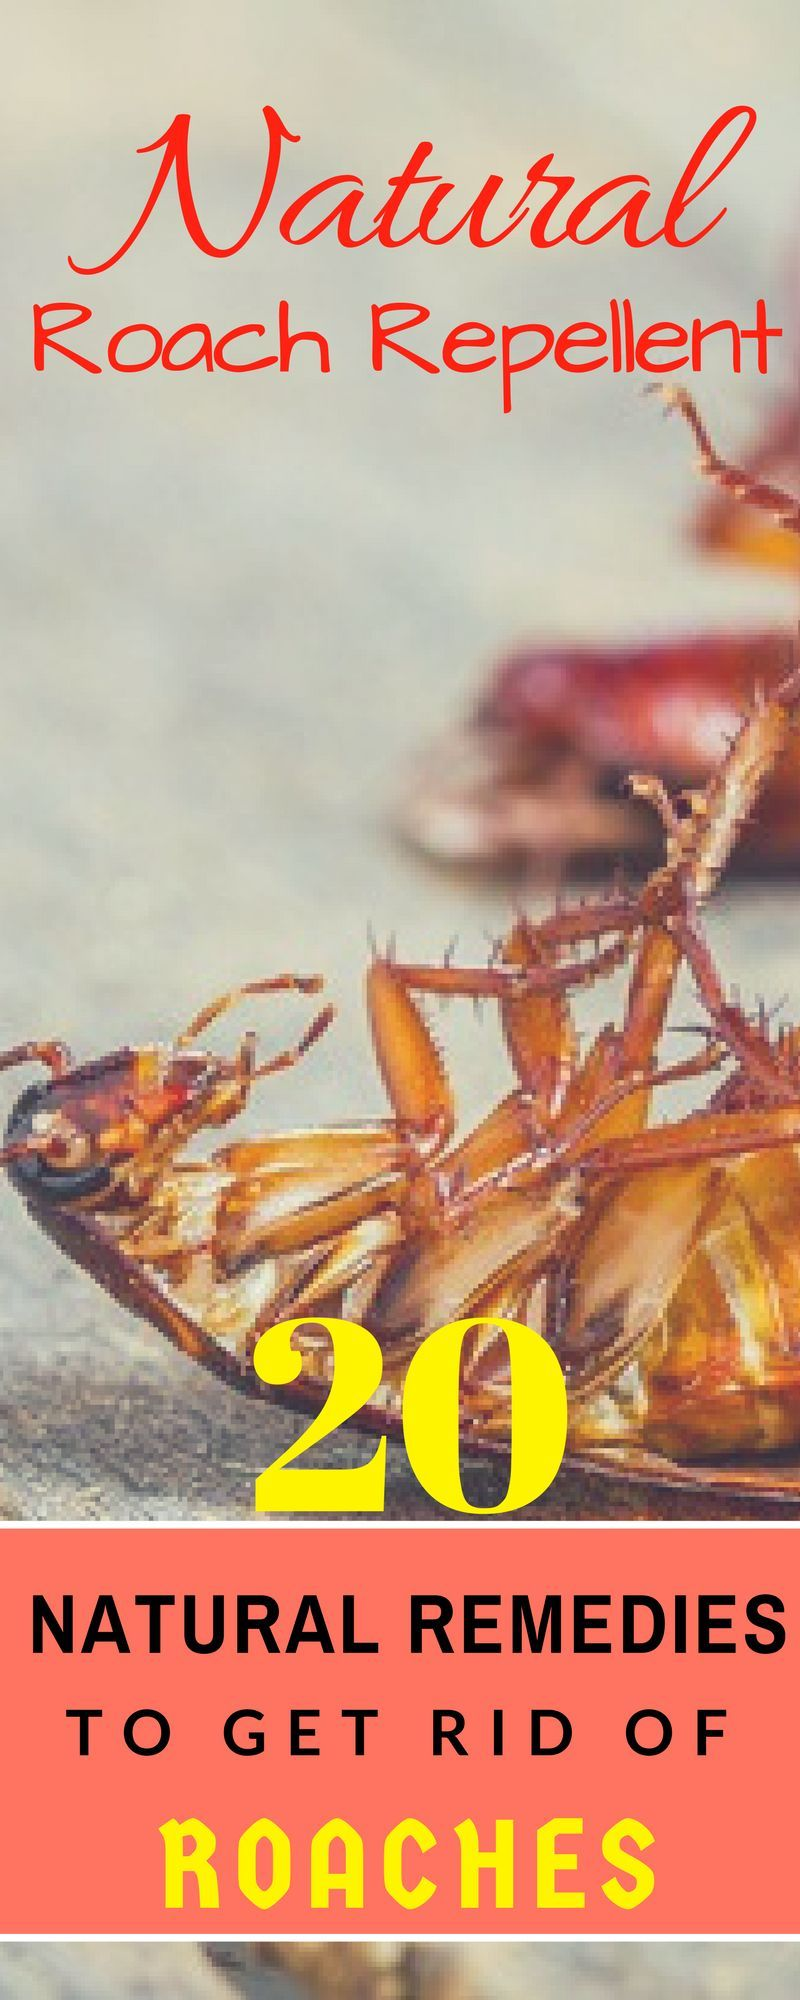 20 home remedies to get rid of roaches naturally. apply homemade